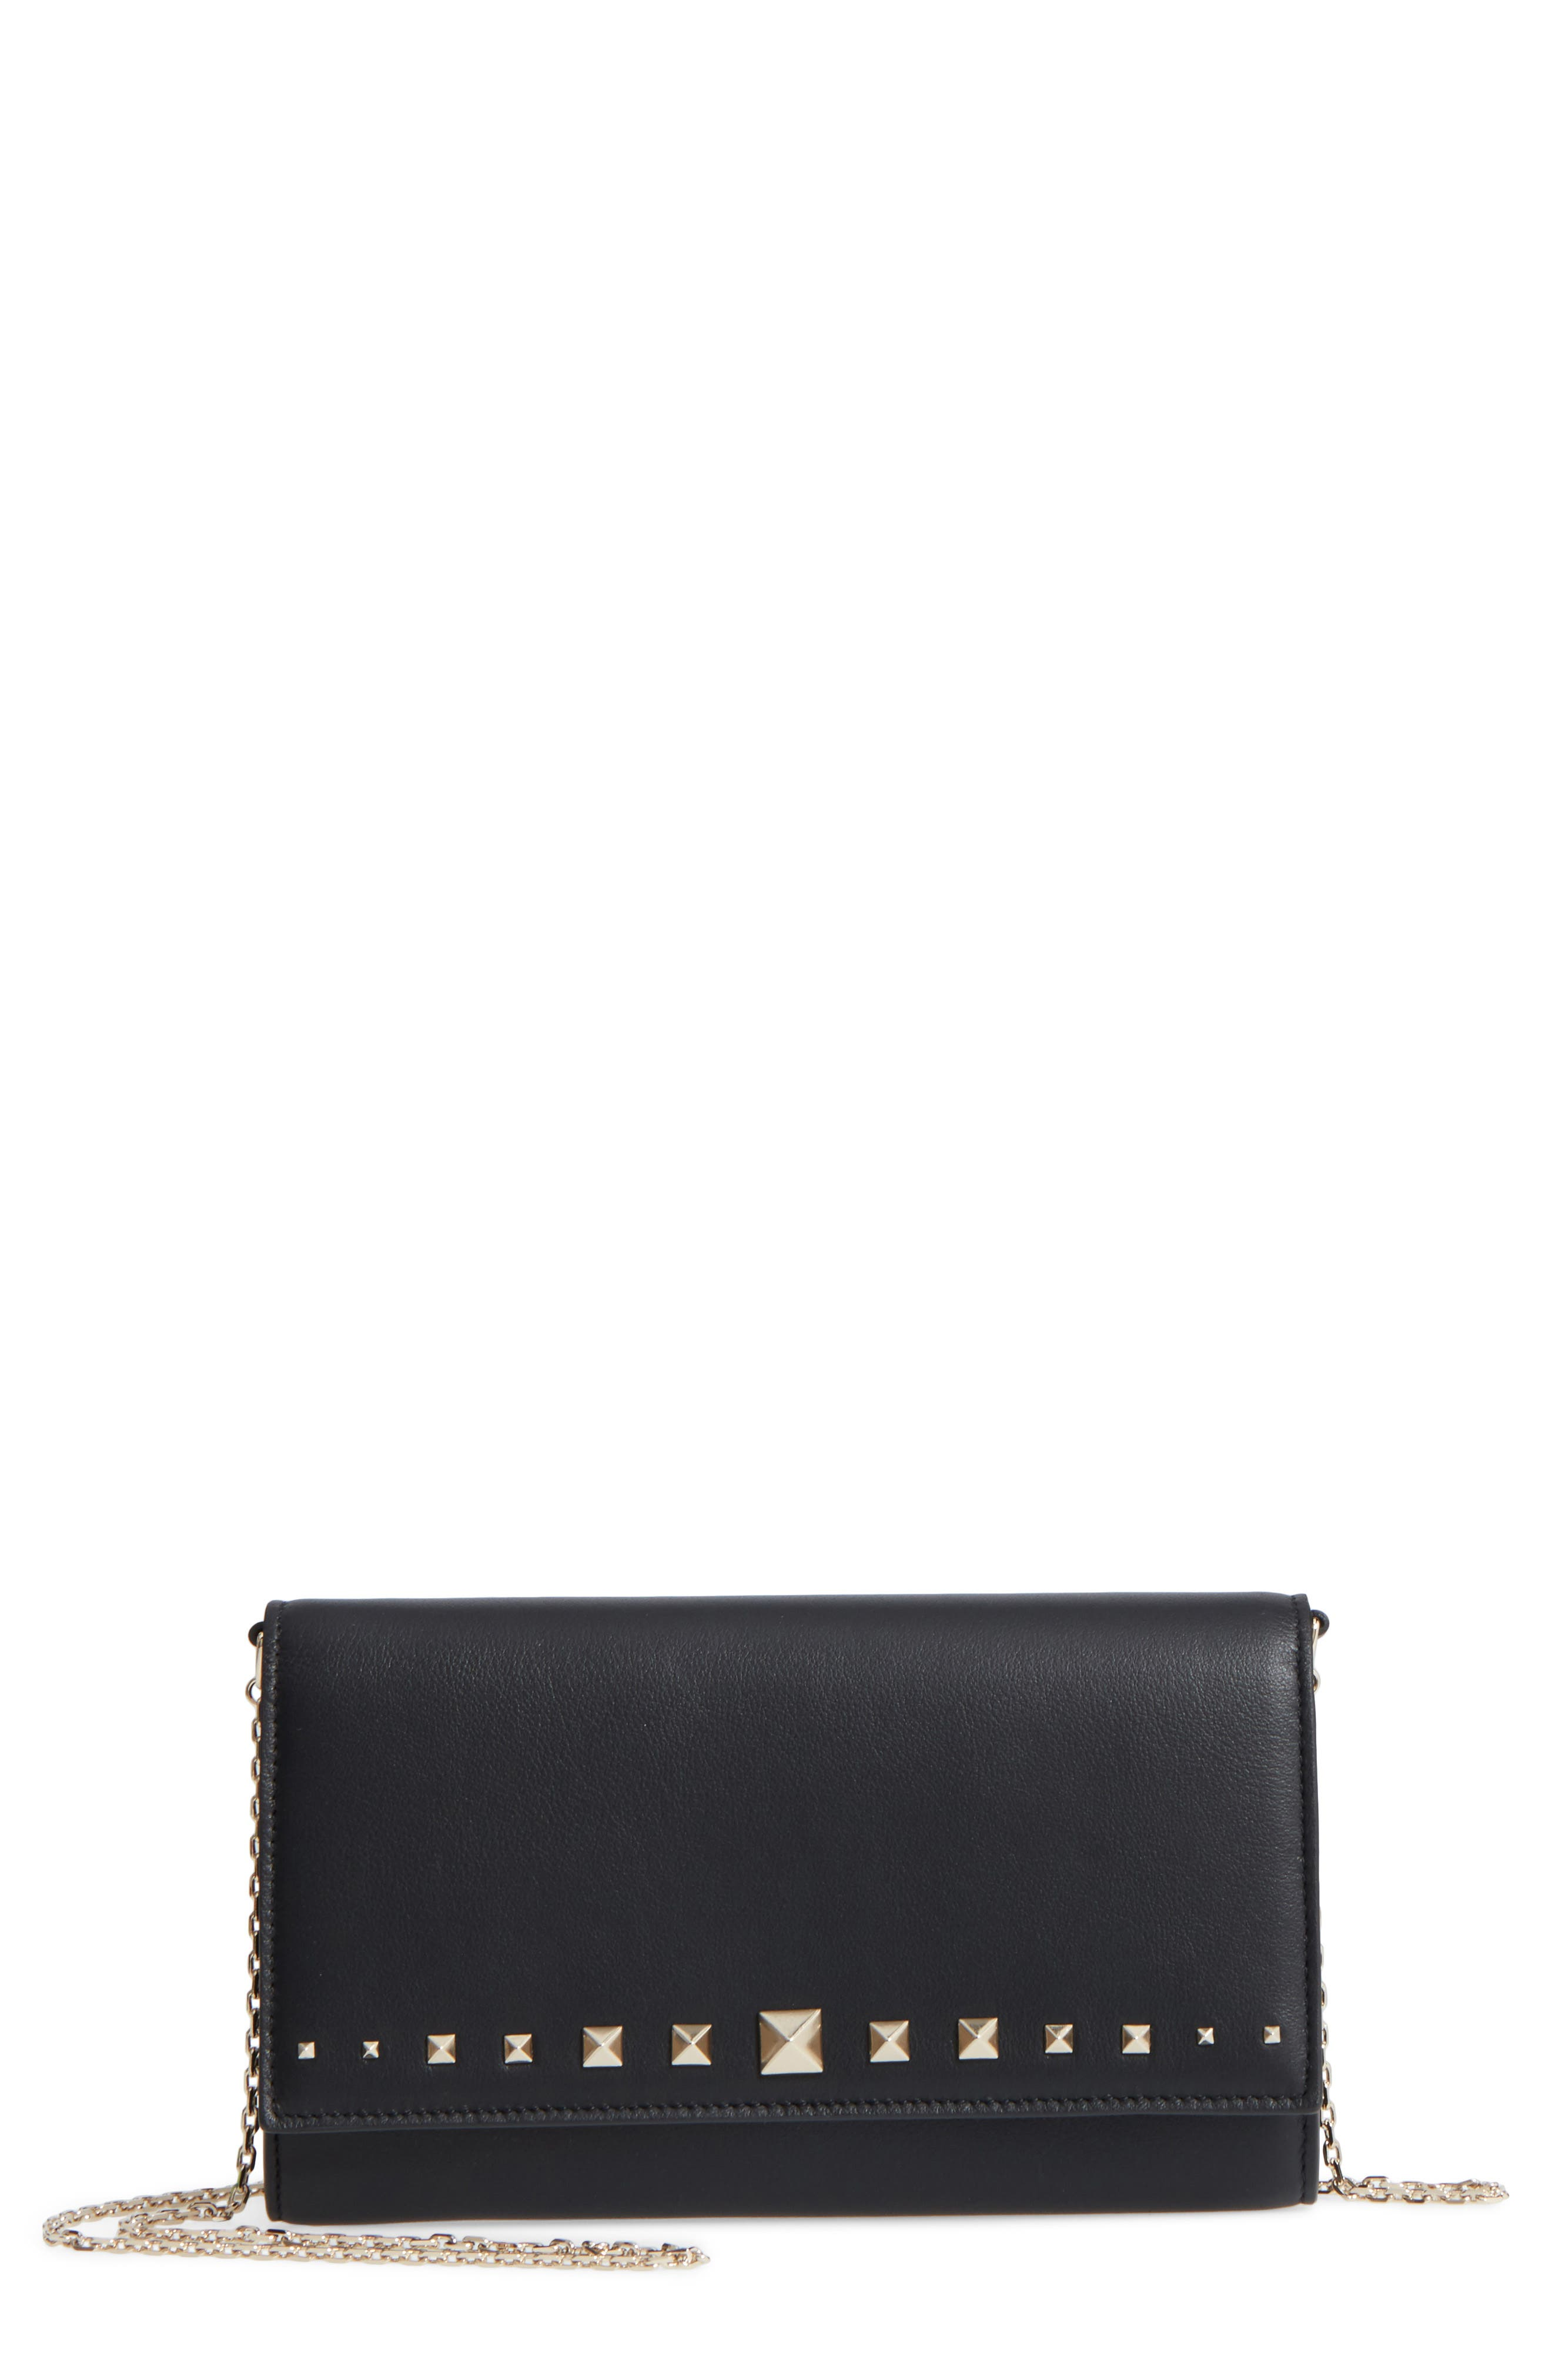 VALENTINO GARAVANI Lovestud Wallet on a Chain